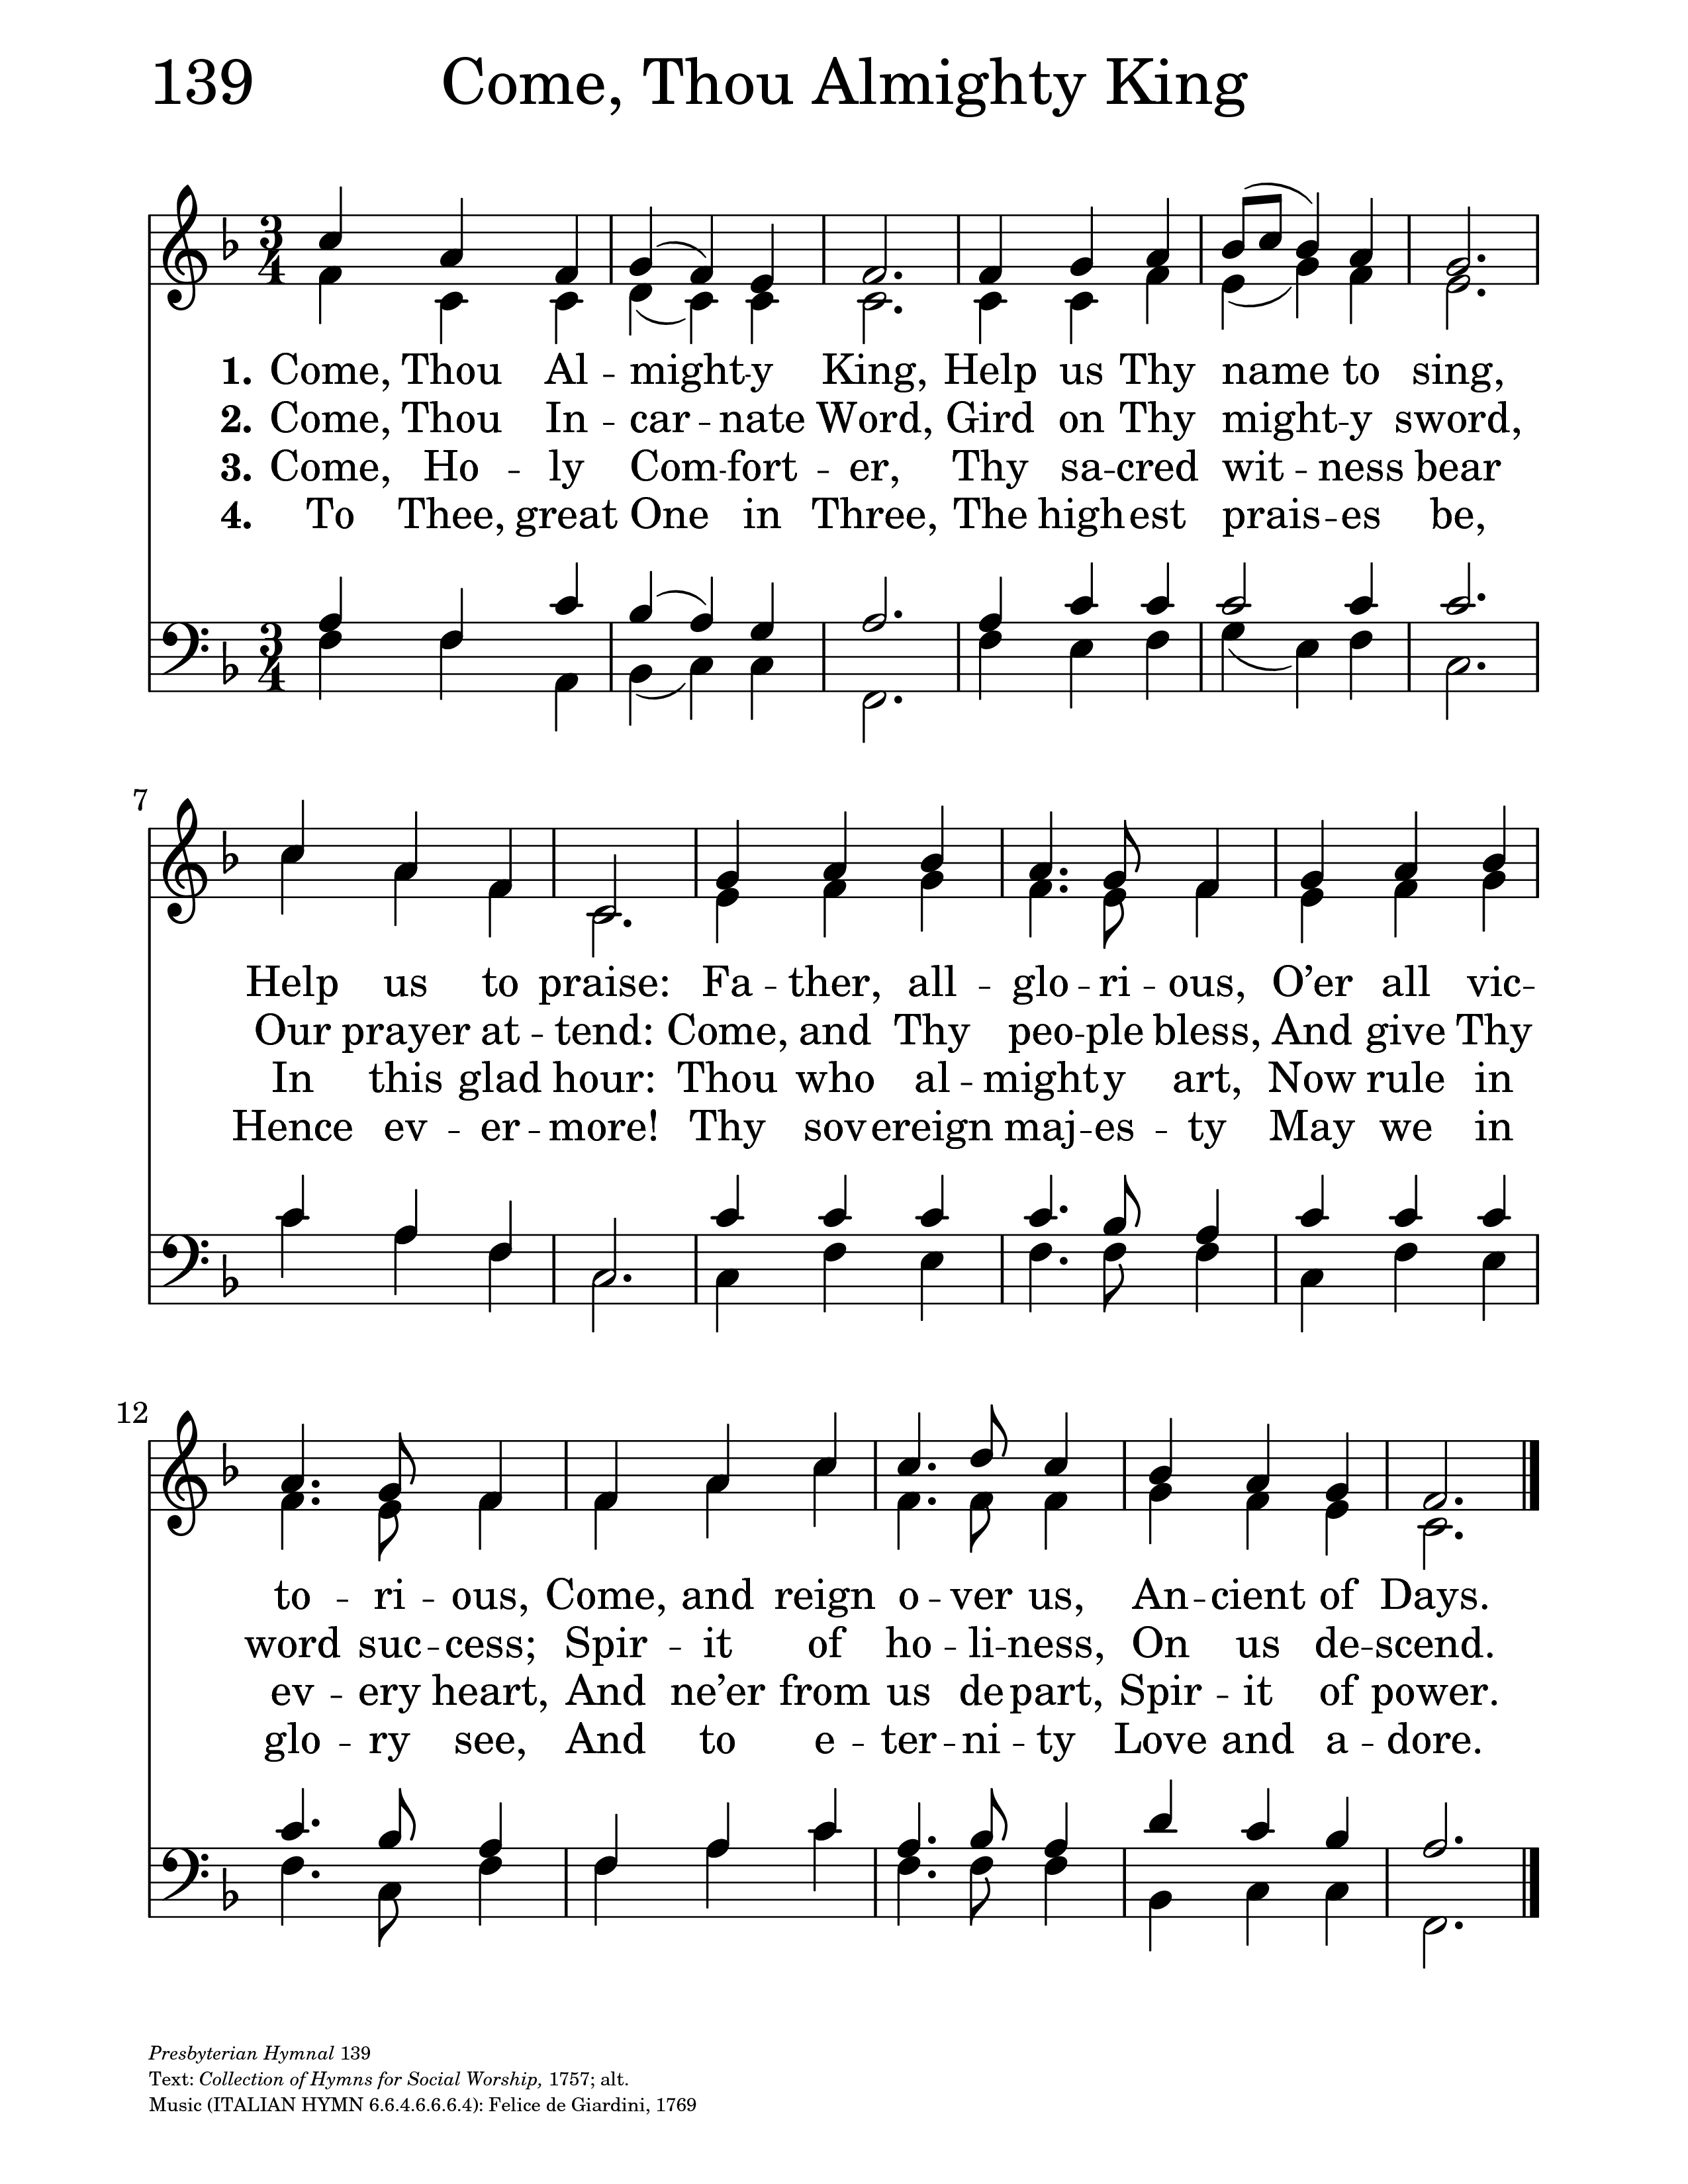 Come thou almighty king hymnary general settings hexwebz Choice Image